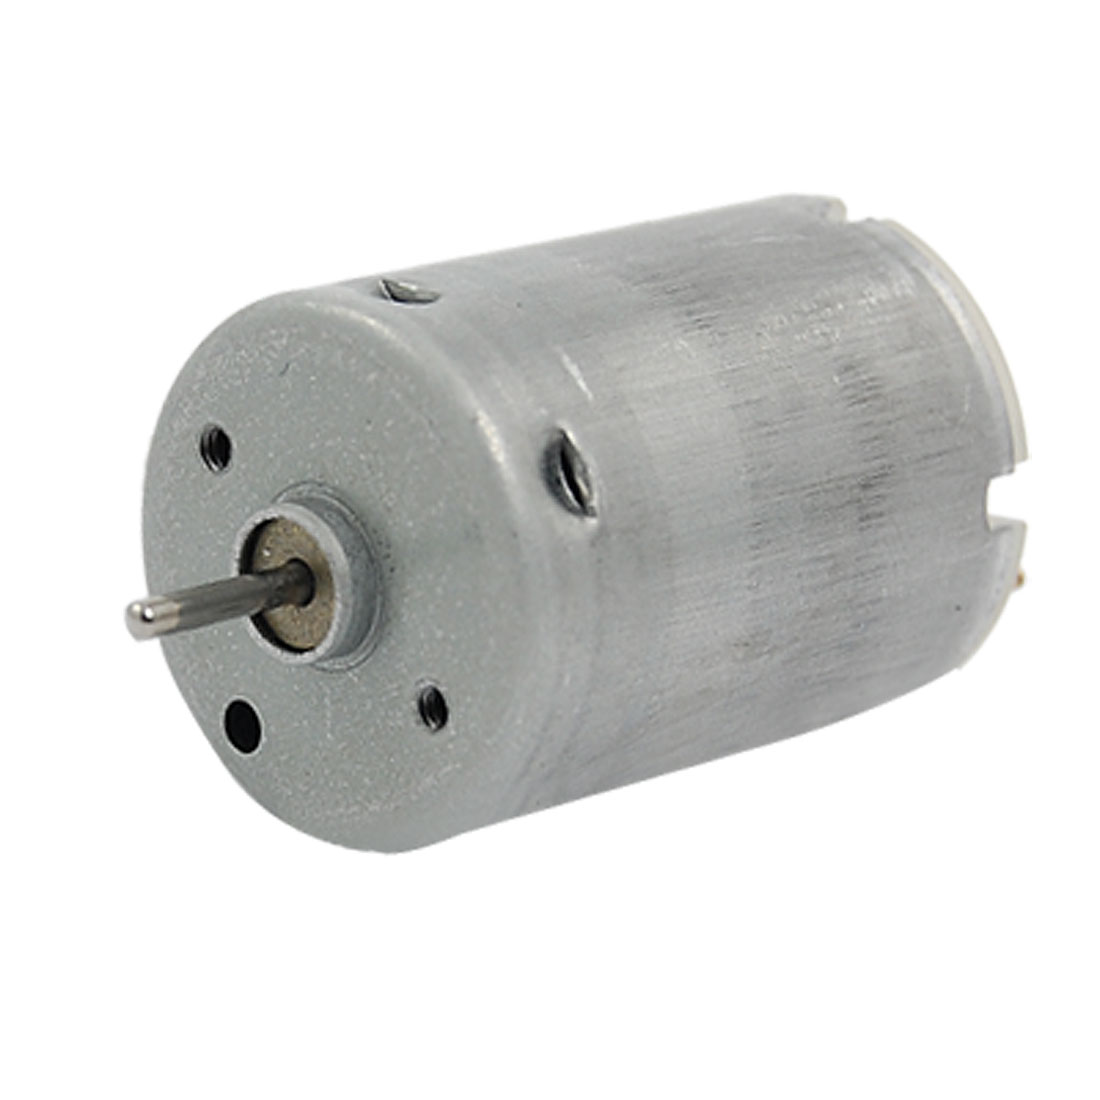 DC 6V 8000RPM 0.03A 1.5mm Shaft Electric Mini Motor for DIY